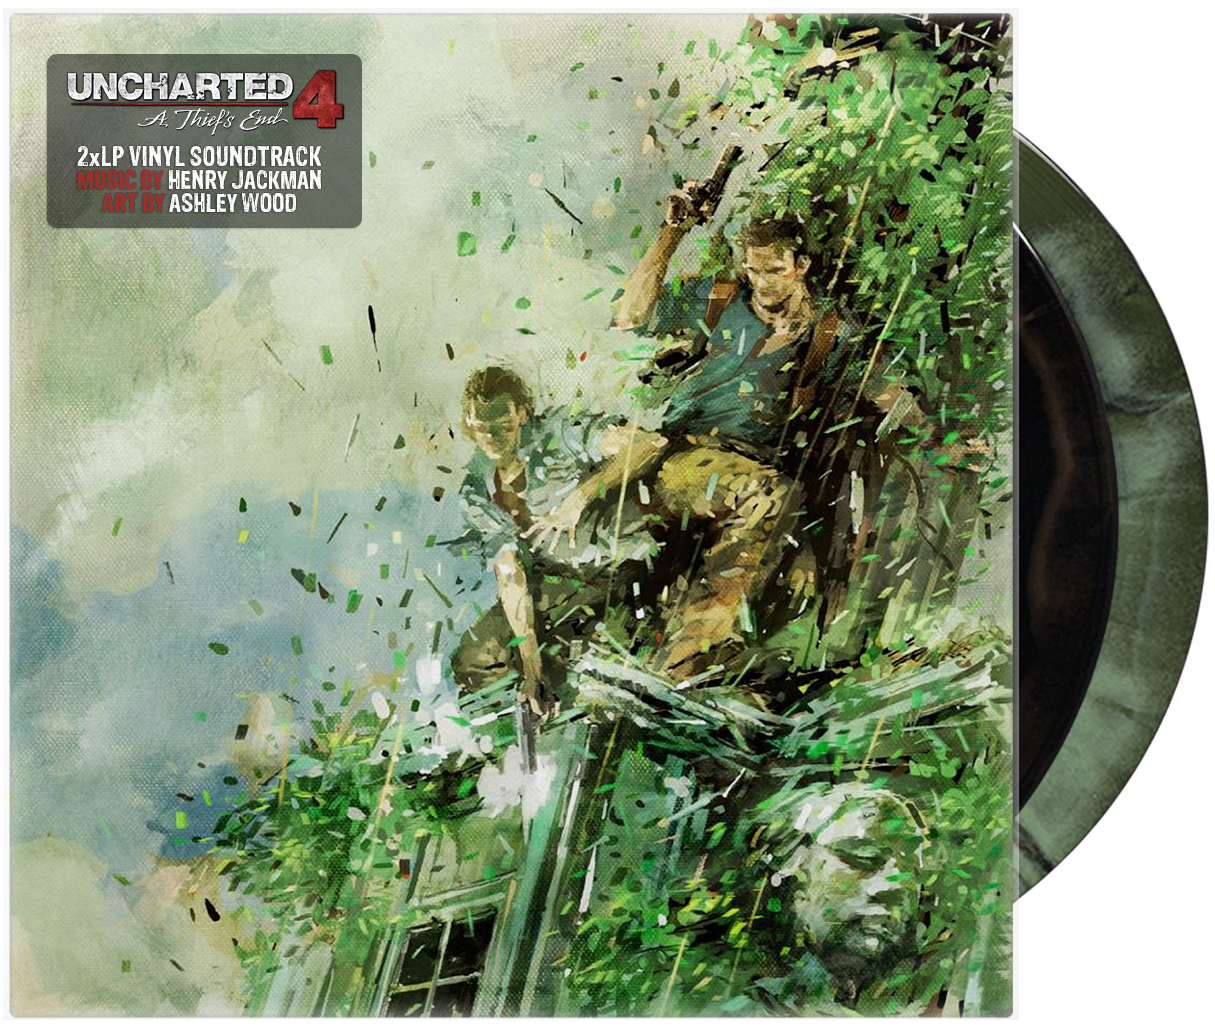 uncharted-vinyl-storeicon-reg_1